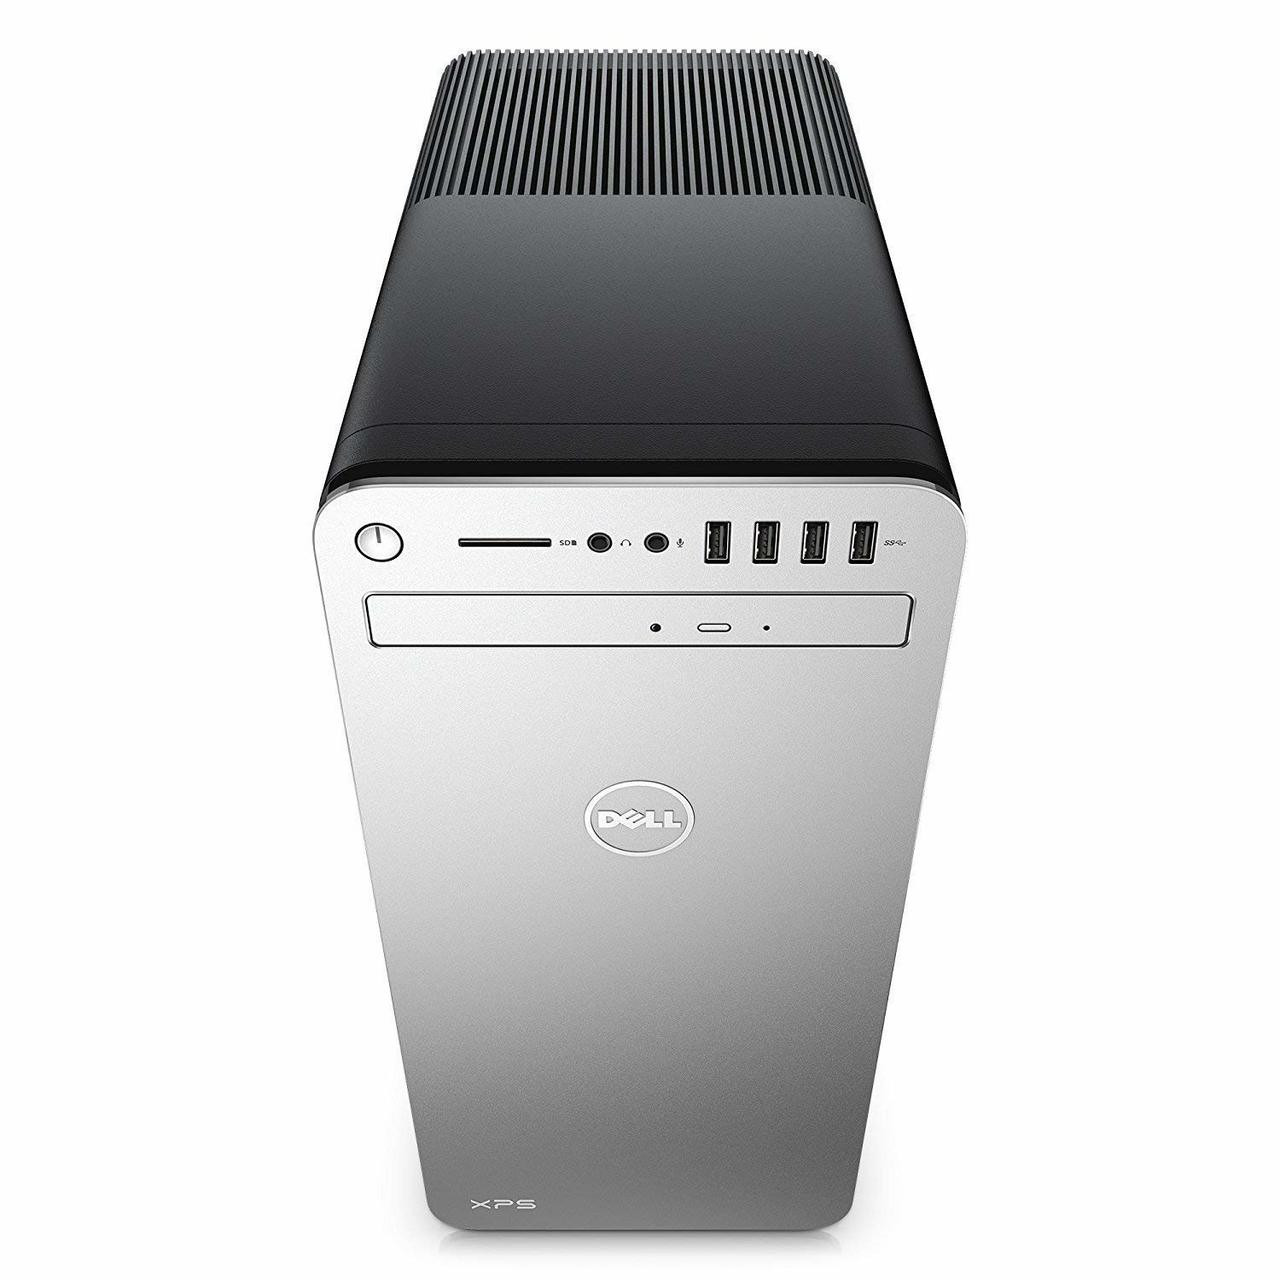 Dell XPS 8920 Special Edition Desktop 8th Gen Intel Core i7-8700K 6-Core  Processor up to 4 7 GHz, 3TB SSD, 32GB RAM Nvidia GTX 1070 with 8GB DVD